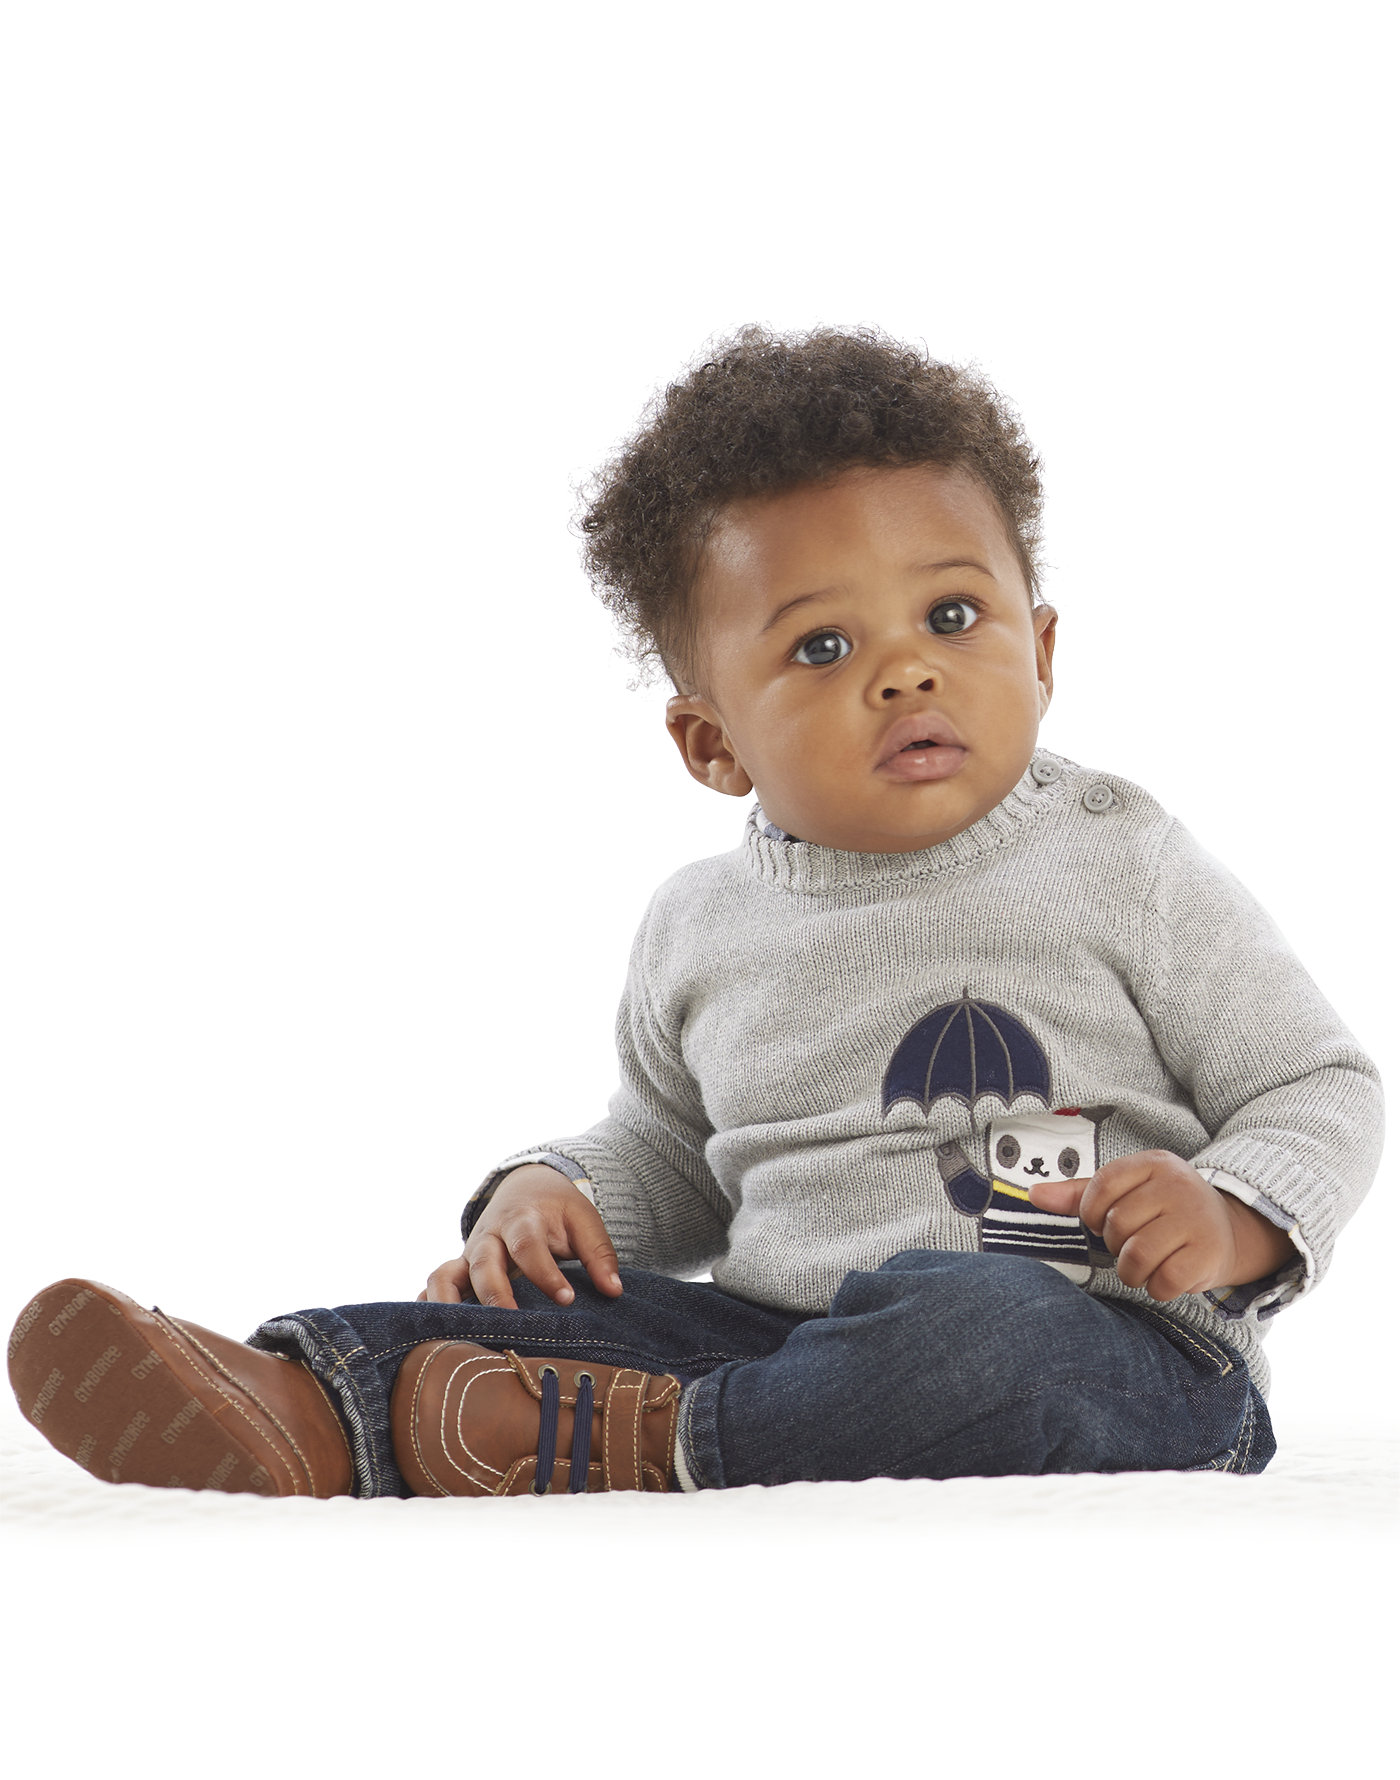 Children's Clothing, Toddler Clothing and Baby Clothes at Gymboree